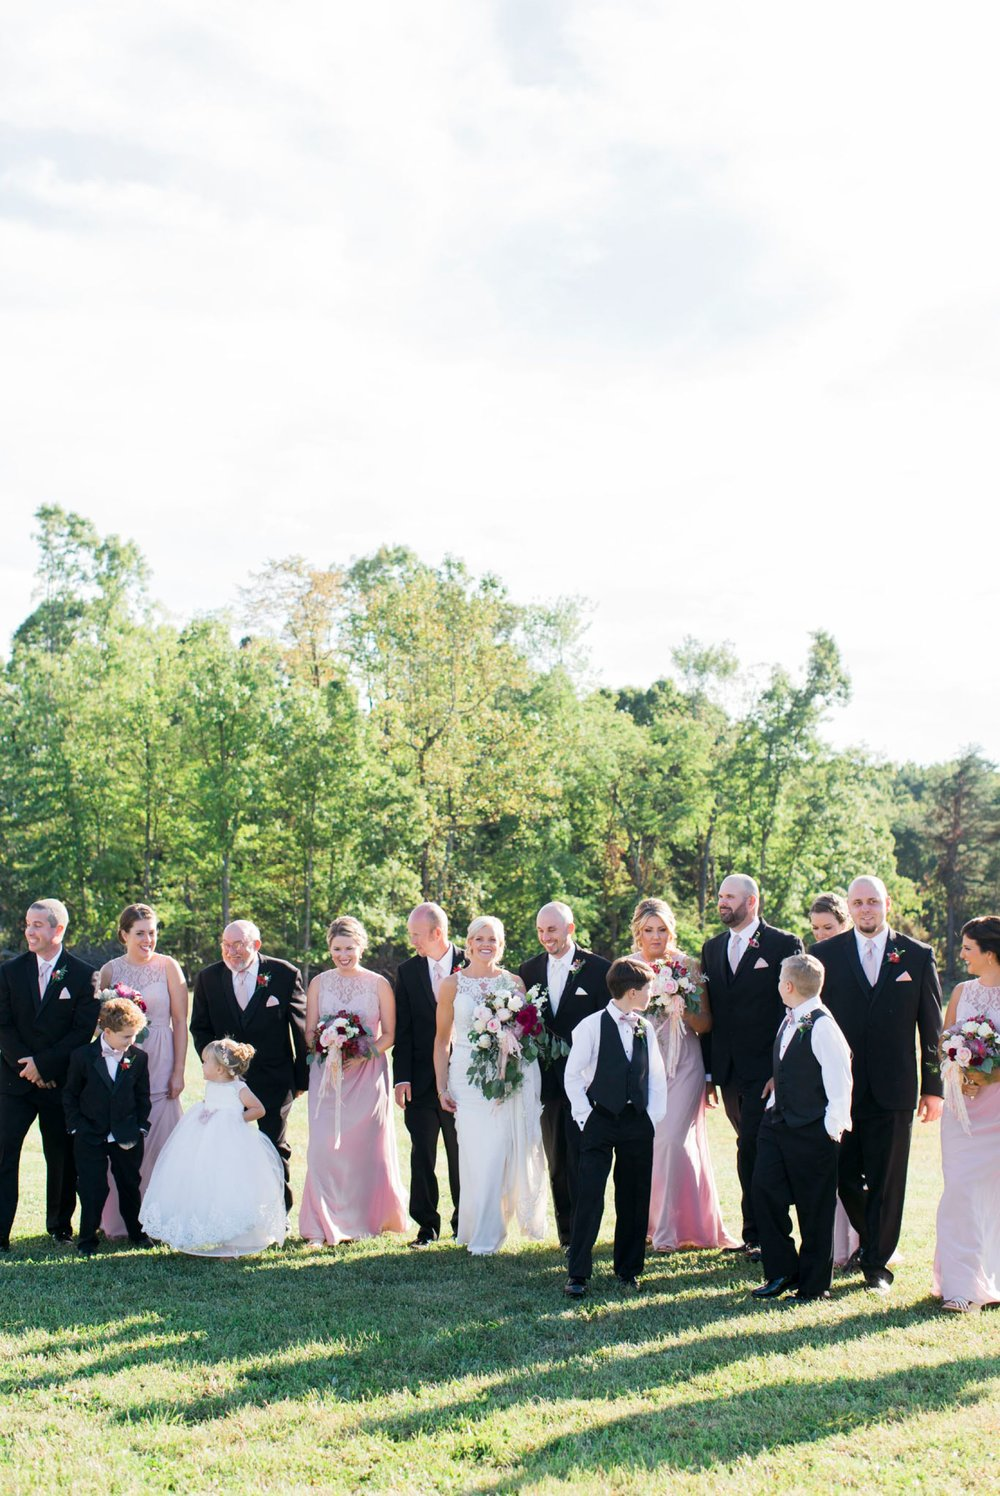 TheMillHouse_ChathamVA_WeddingPhotographer_VirginiaWeddingPhotographer_9.jpg 77.jpg